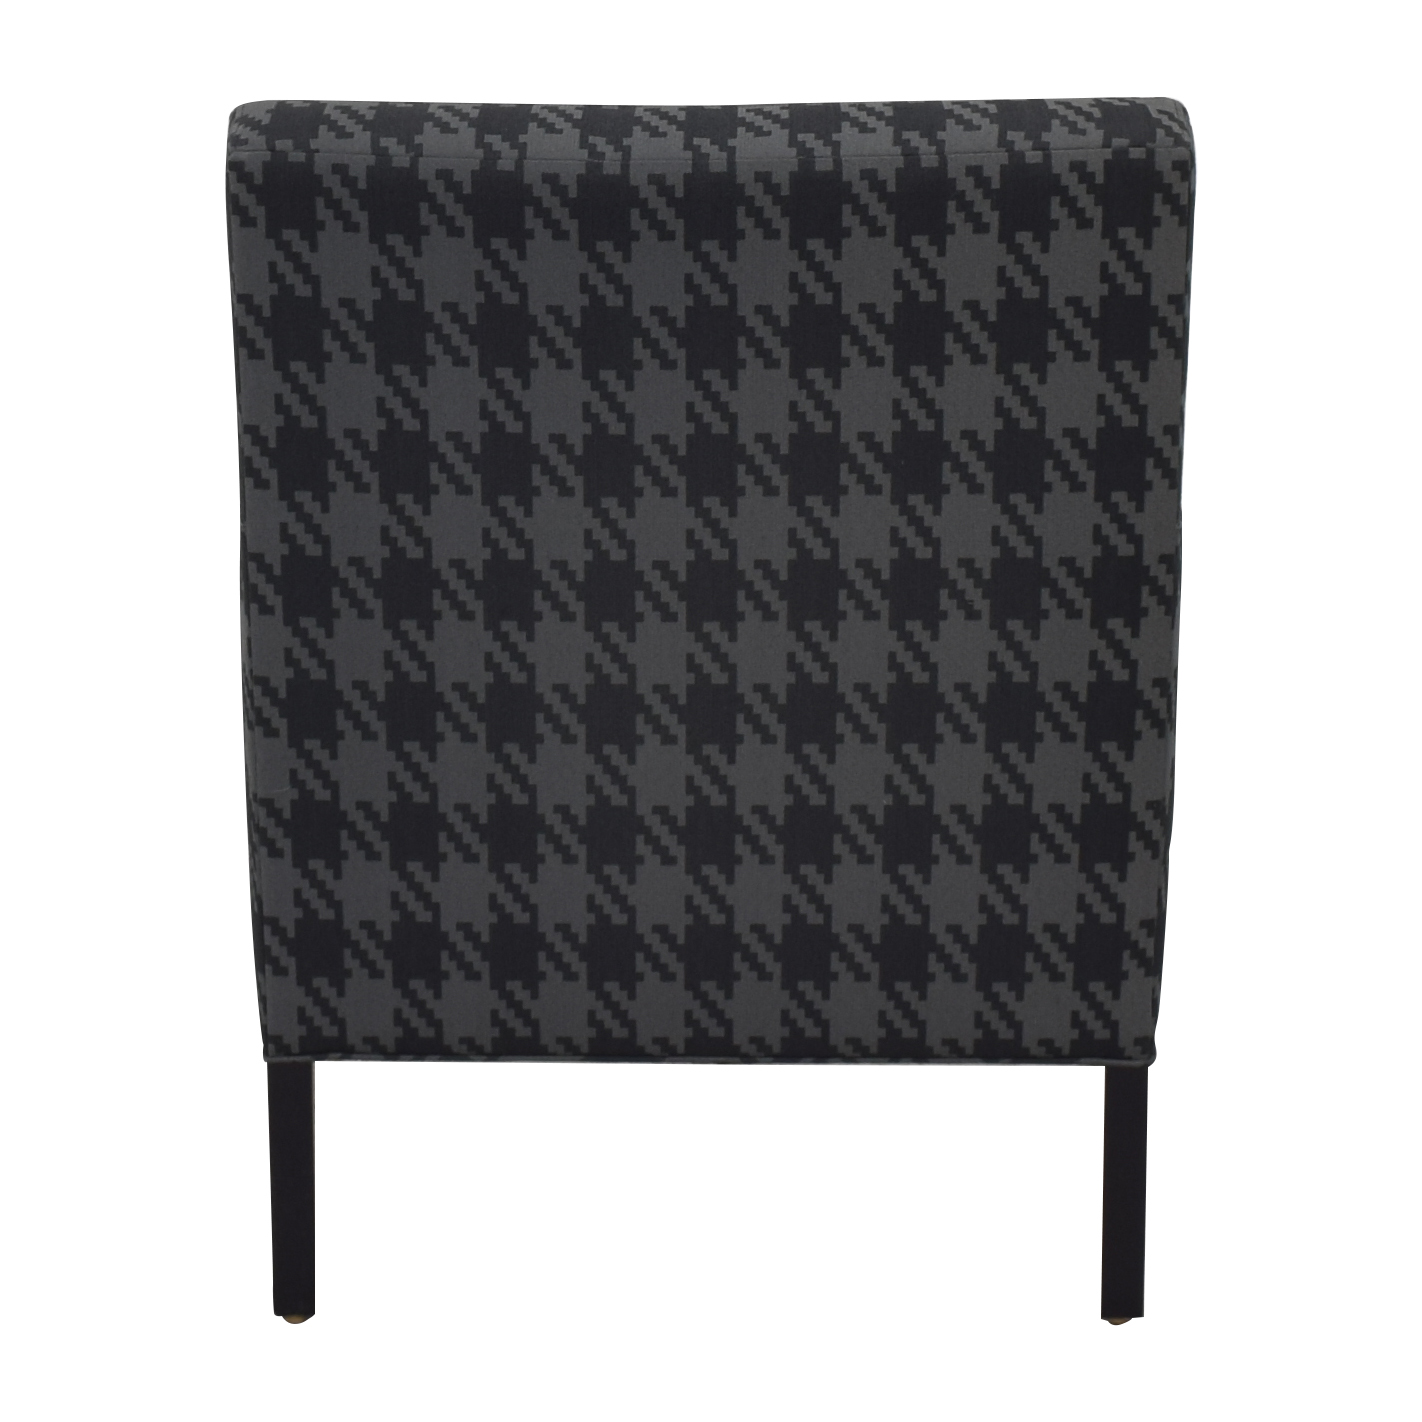 Crate & Barrel Armchair / Chairs